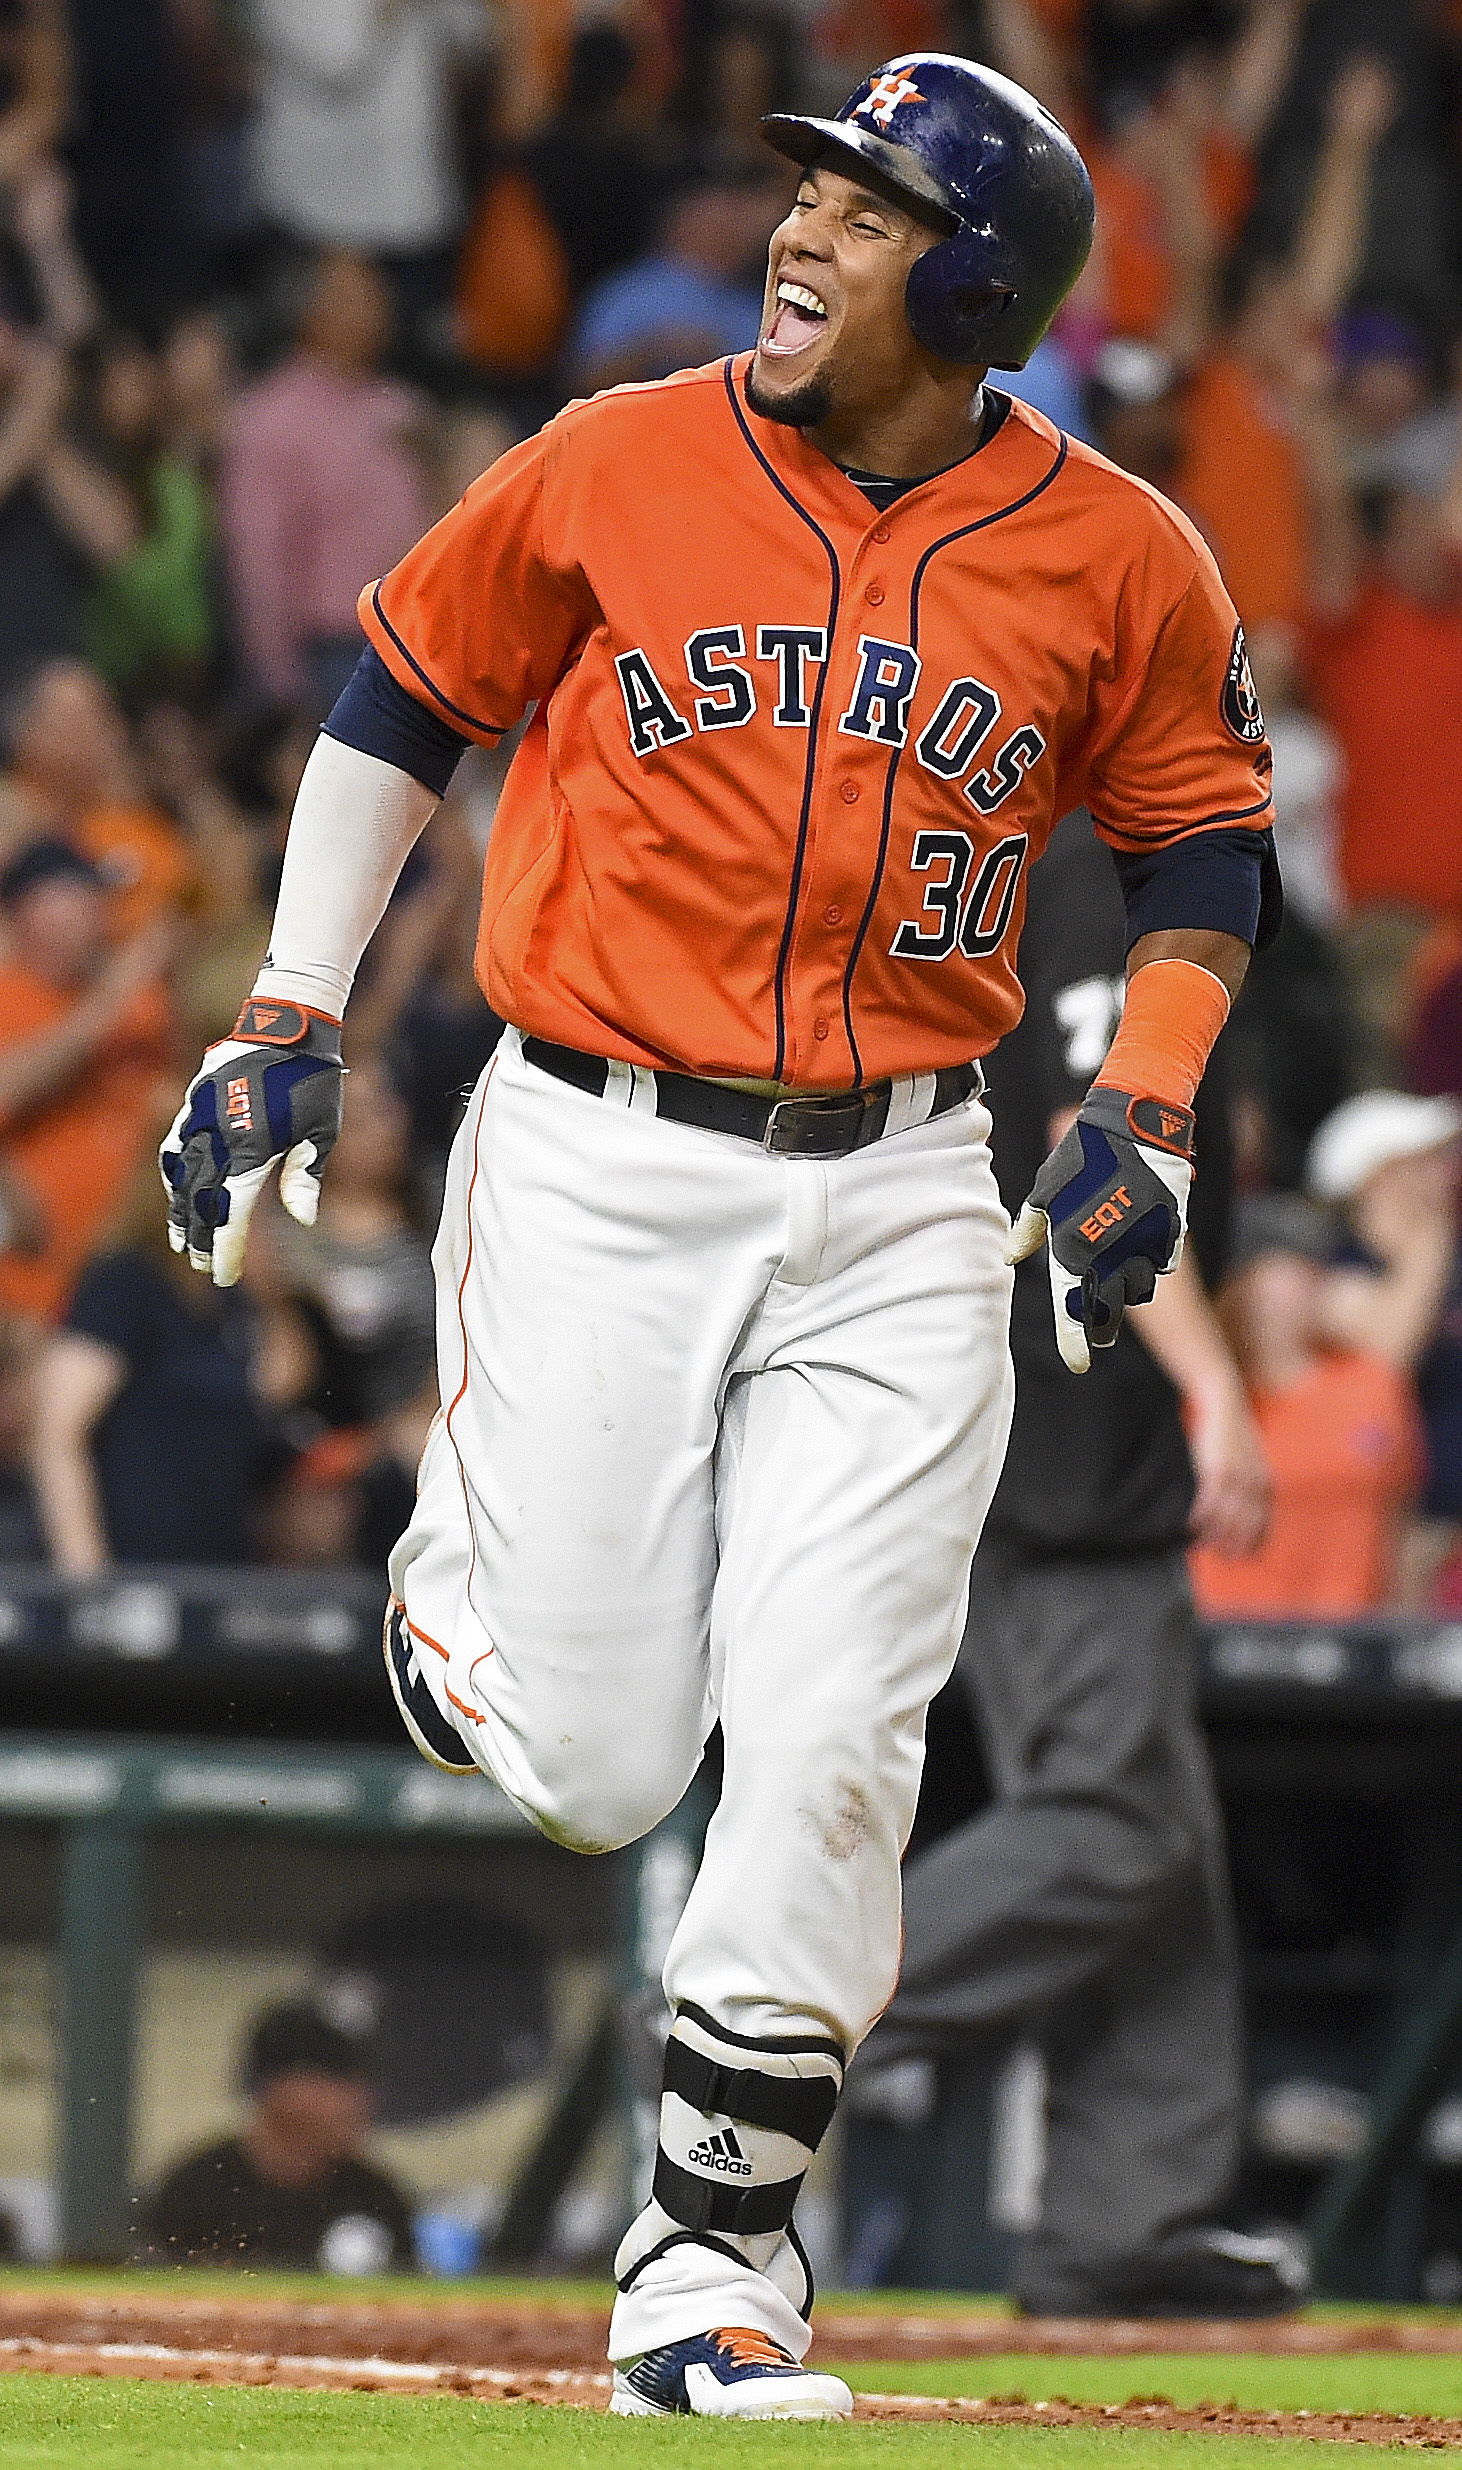 Houston Astros' Carlos Gomez reacts after hitting a two-run home run off Chicago White Sox starting pitcher Miguel Gonzalez in the seventh inning of a baseball game, Friday, July 1, 2016, in Houston. (AP Photo/Eric Christian Smith)